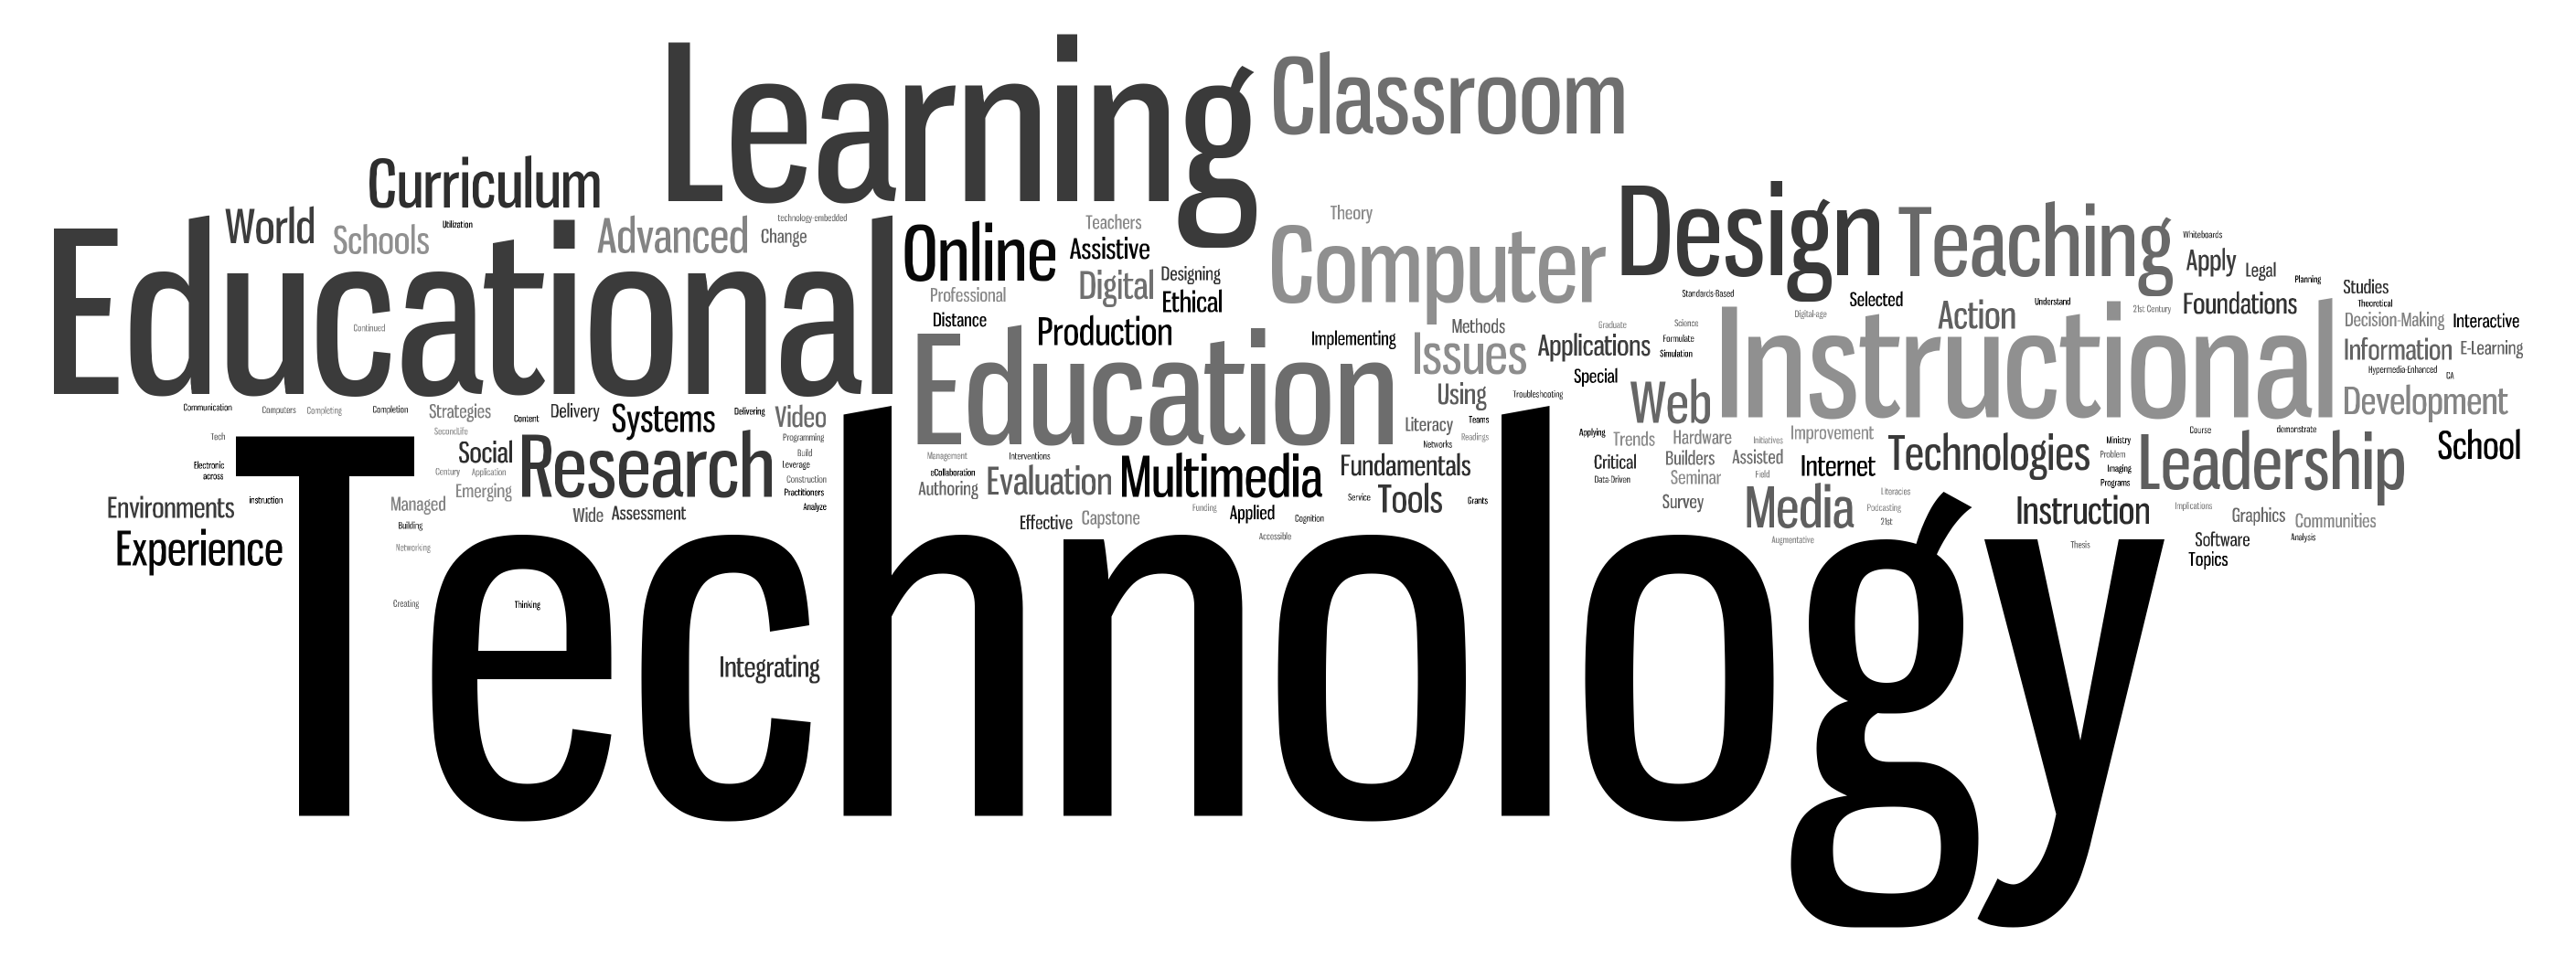 technologyView the full size version of this Wordle and then use